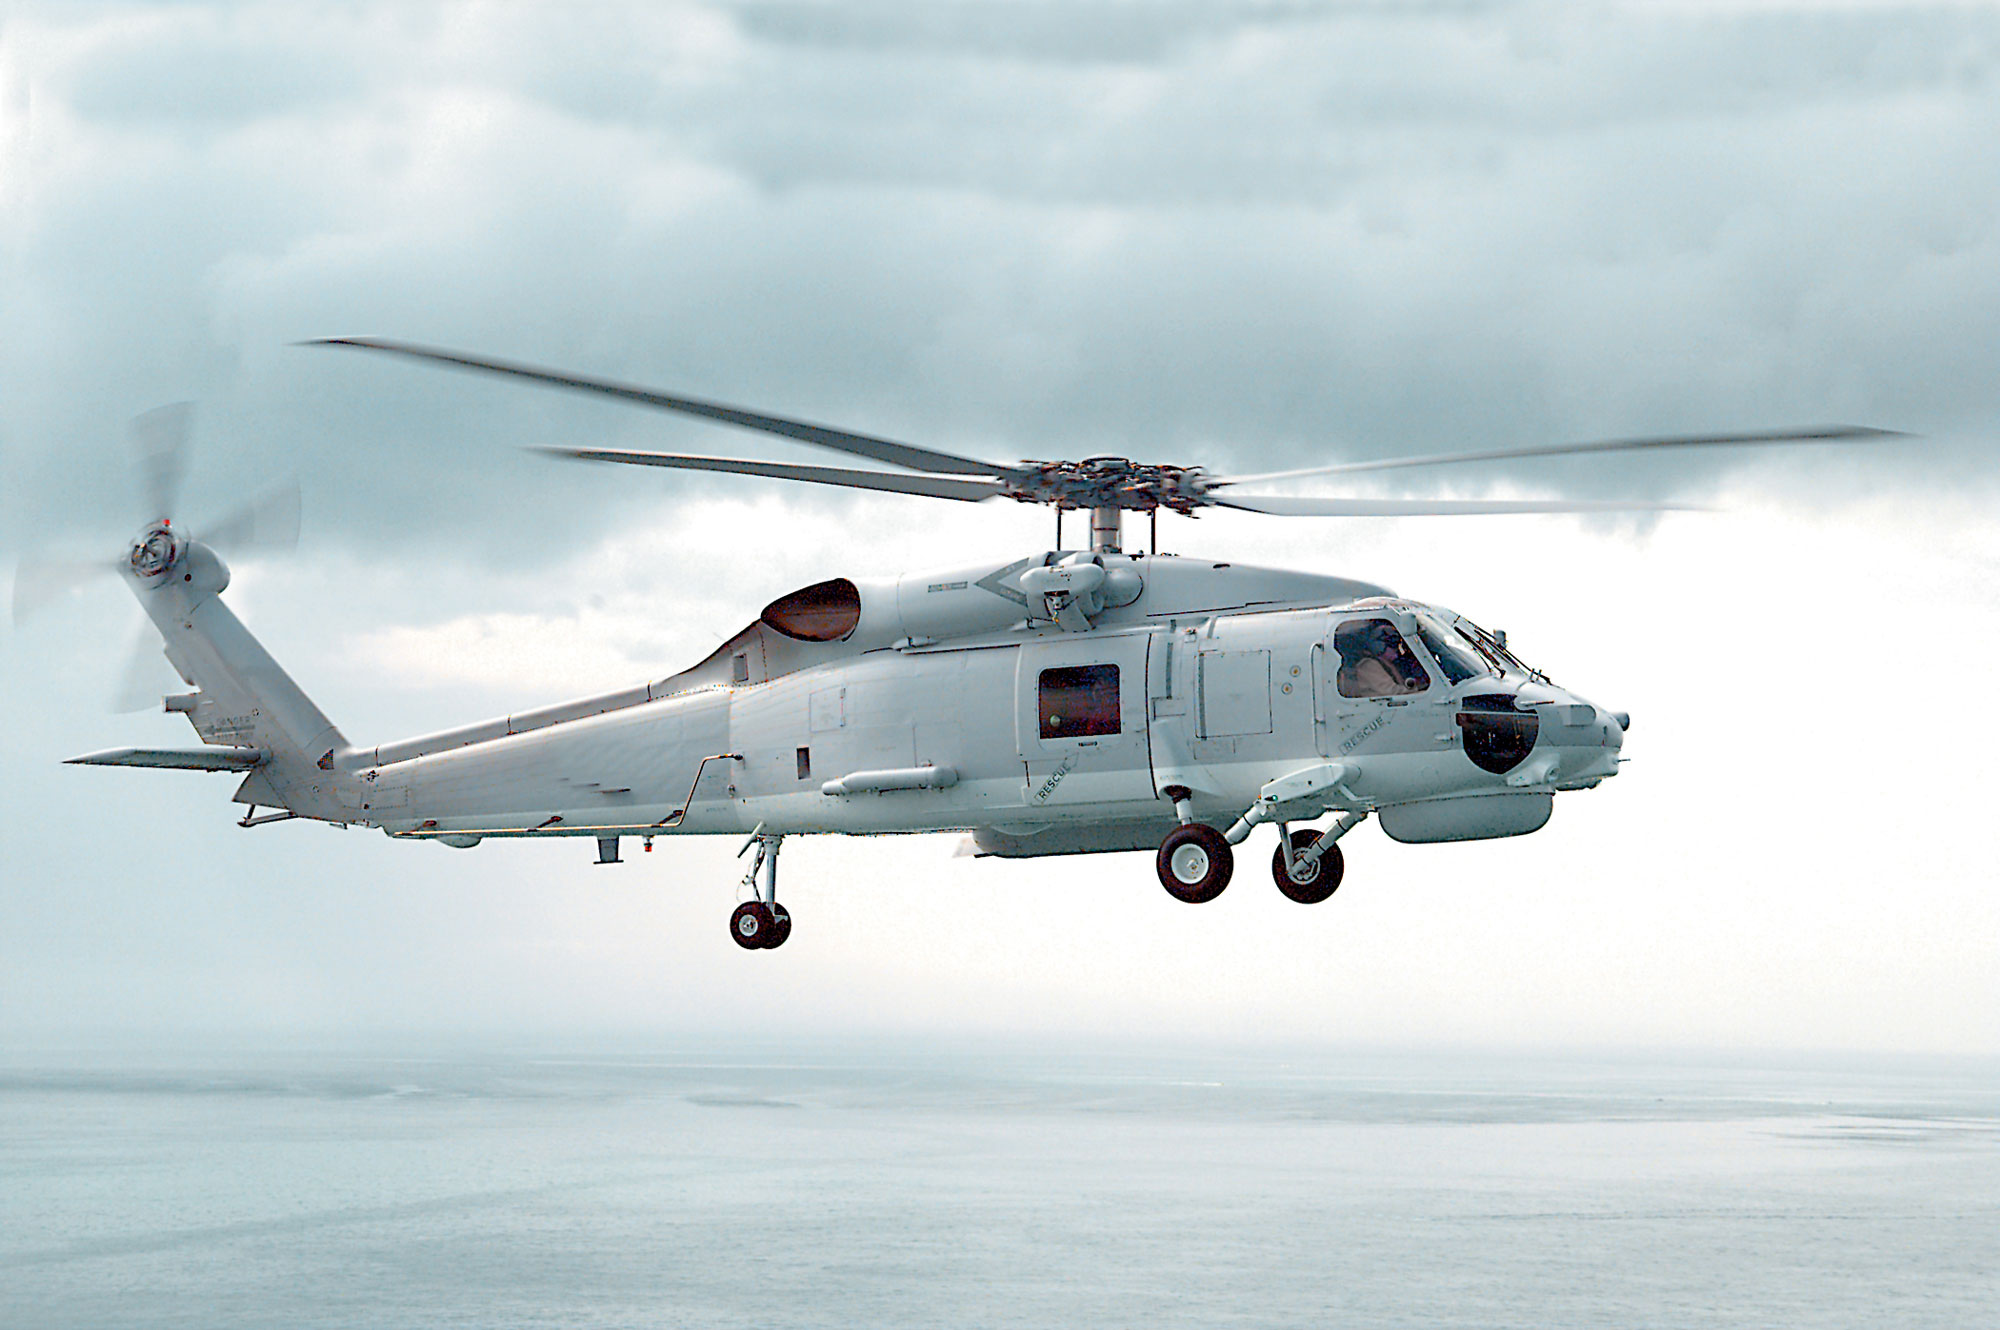 helicopter charter and training with Indian Navy Chooses Sikorsky S 70b on Vietnam Buys More Defense Equipment Israel likewise Sale plans as well Singapore Close Super Puma Replacement Choice besides Air Bp 2 together with Britain France Jointly Develop Future  bat Air System.